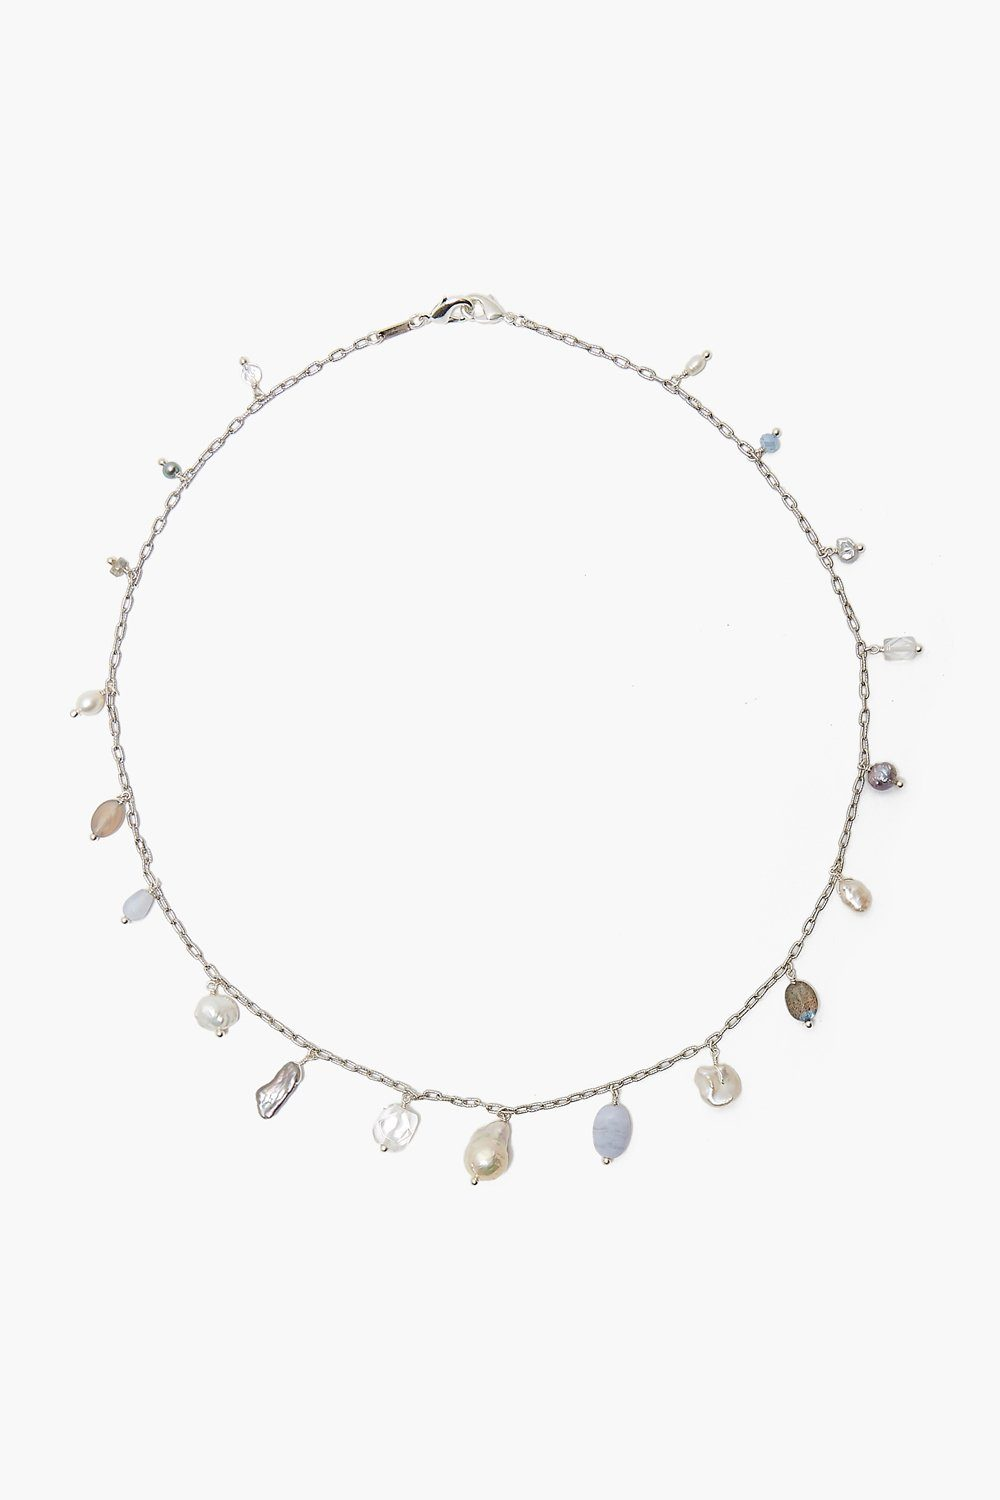 Blue Lace Agate Mix Voyage Mask Chain